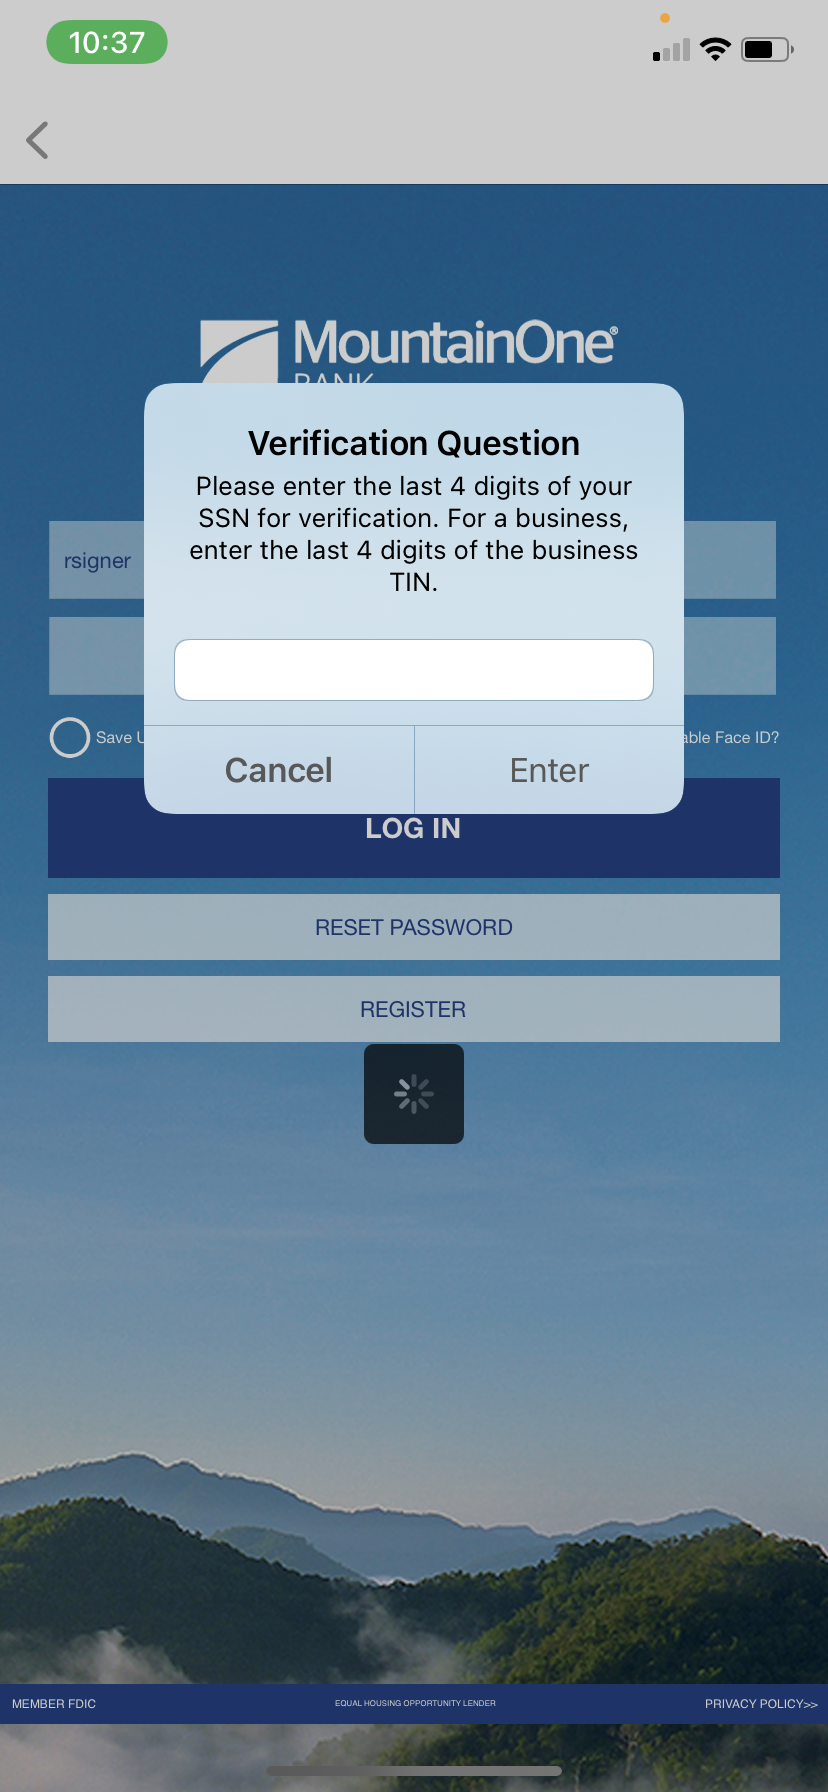 Login verification question asking for last four digits of SSN or TIN